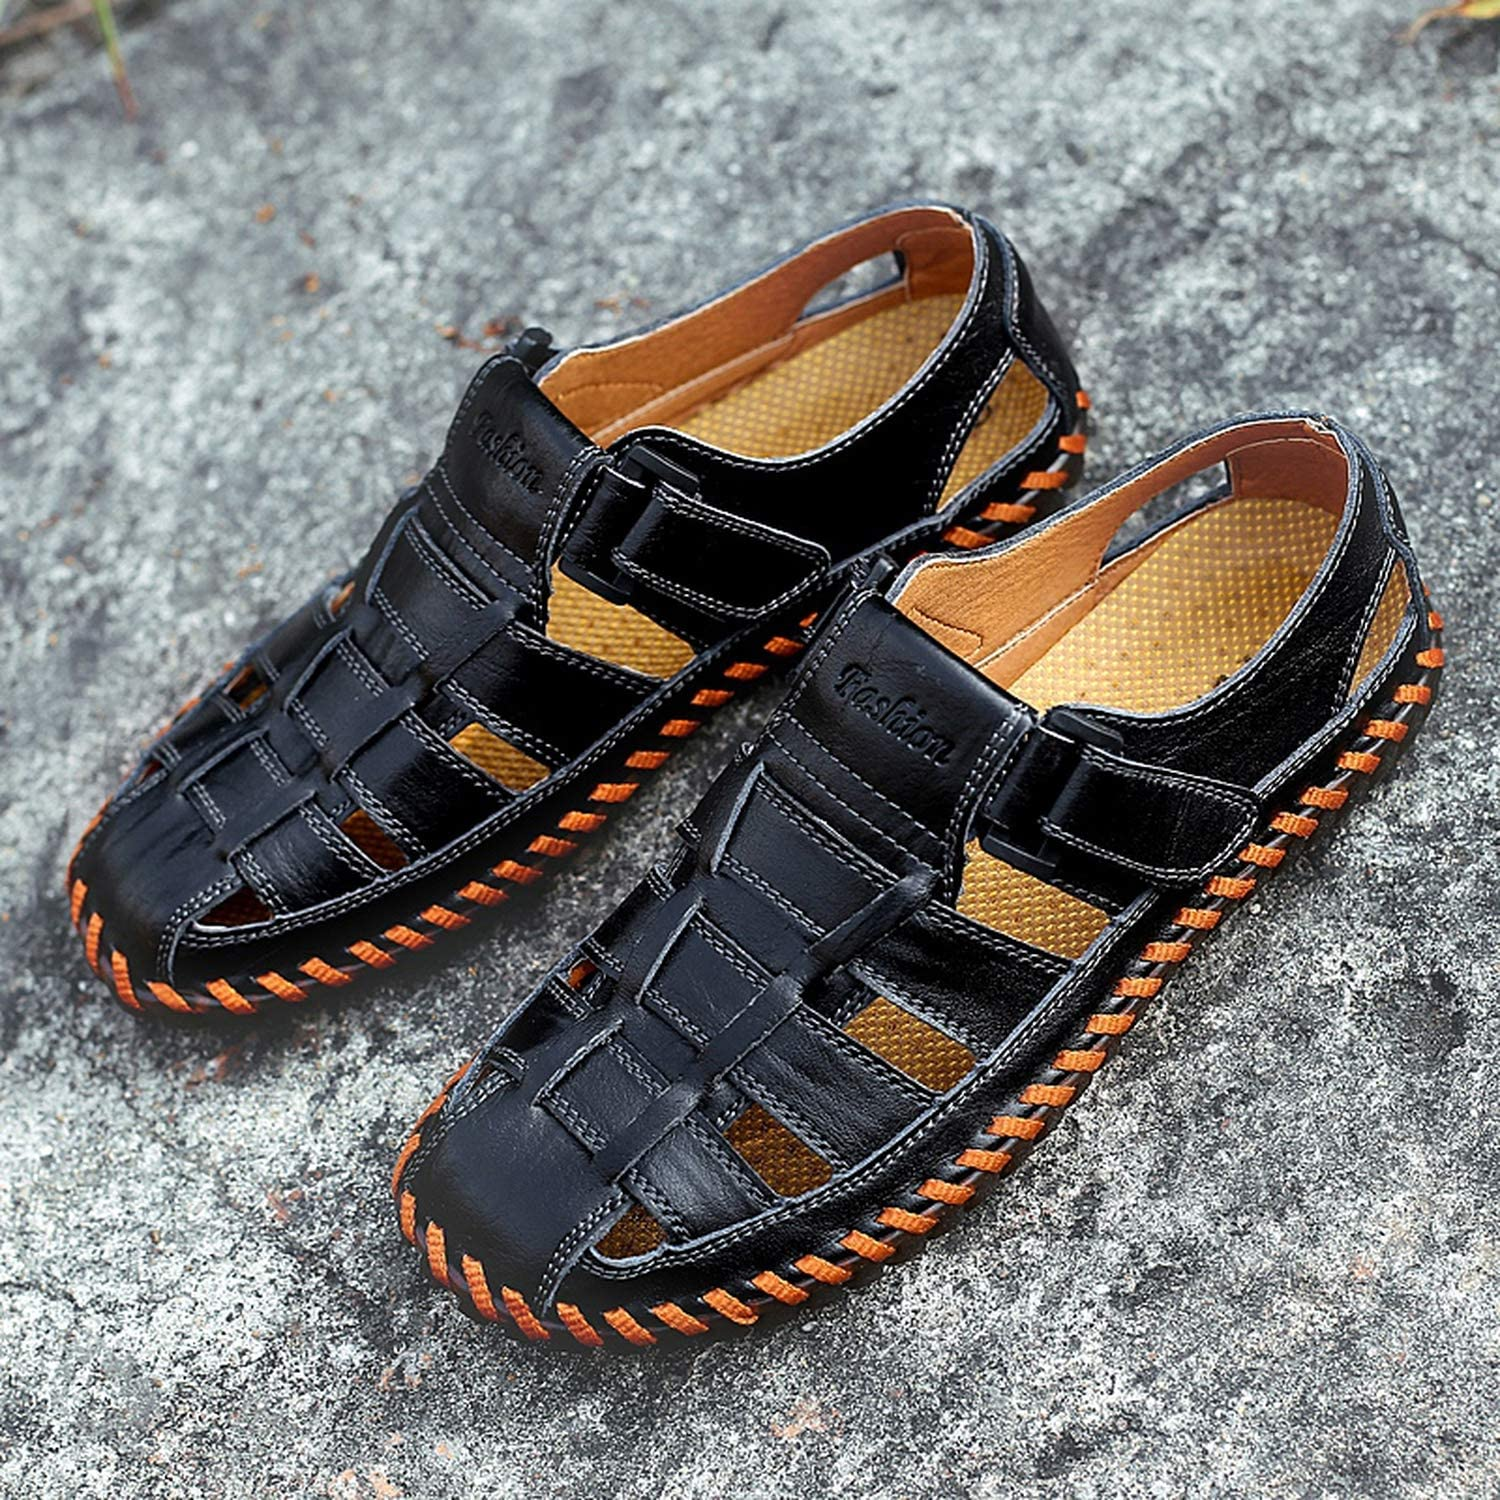 Mens Sandals Real Leather Outdoor Sandals Summer Handmade Men Shoes Mens Sandals Breathable Summer Walking Sandals,Yellow,9.5